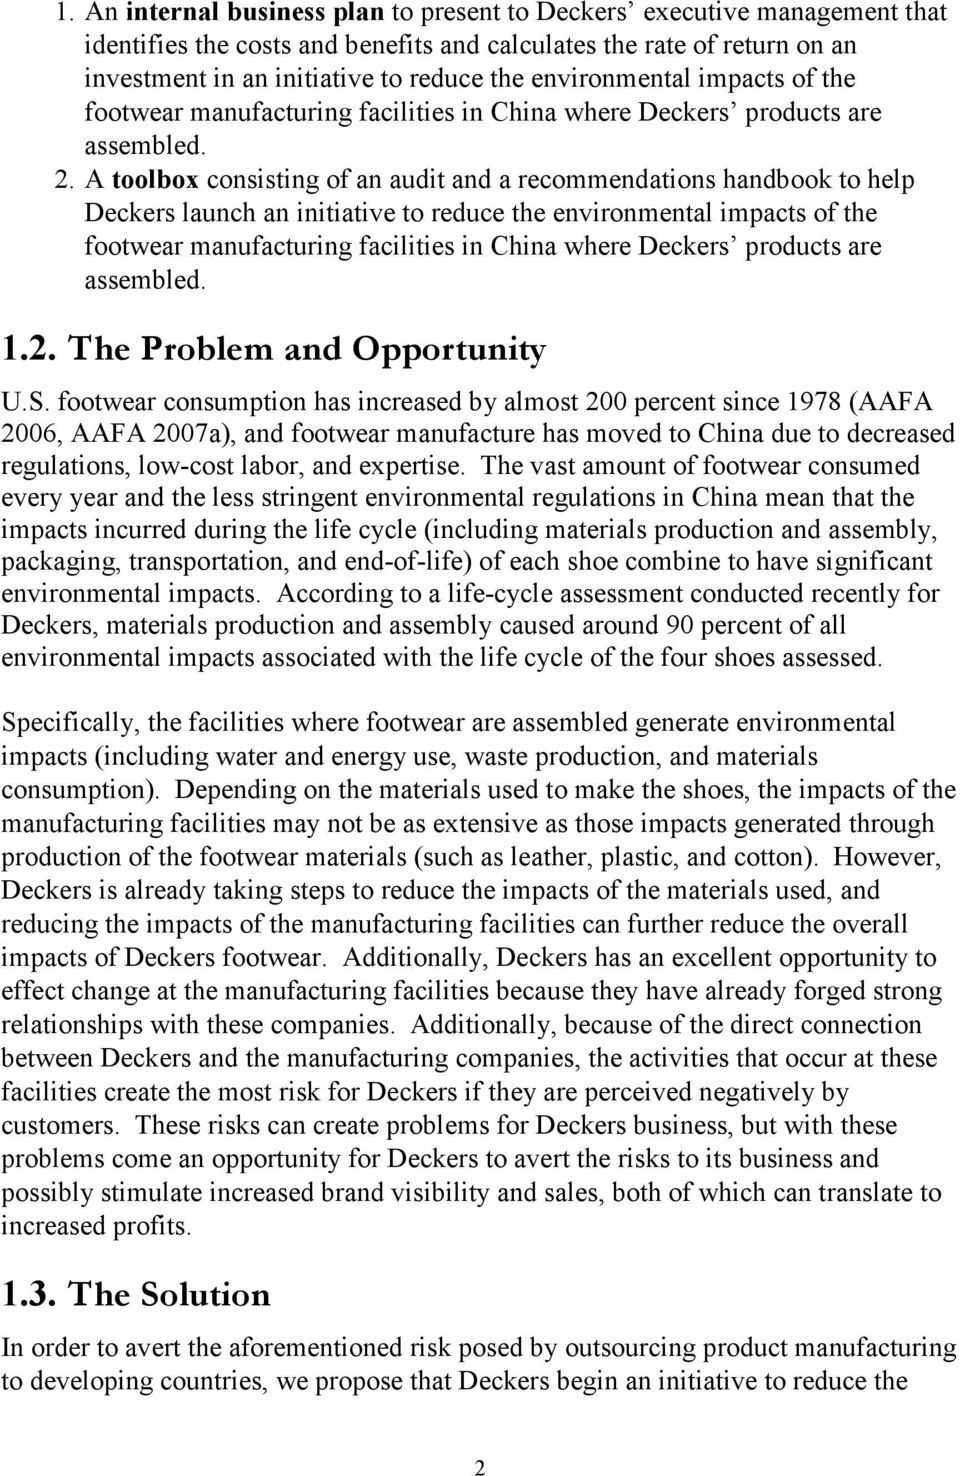 A toolbox consisting of an audit and a recommendations handbook to help Deckers launch an initiative to reduce the environmental impacts of the footwear manufacturing facilities in China where